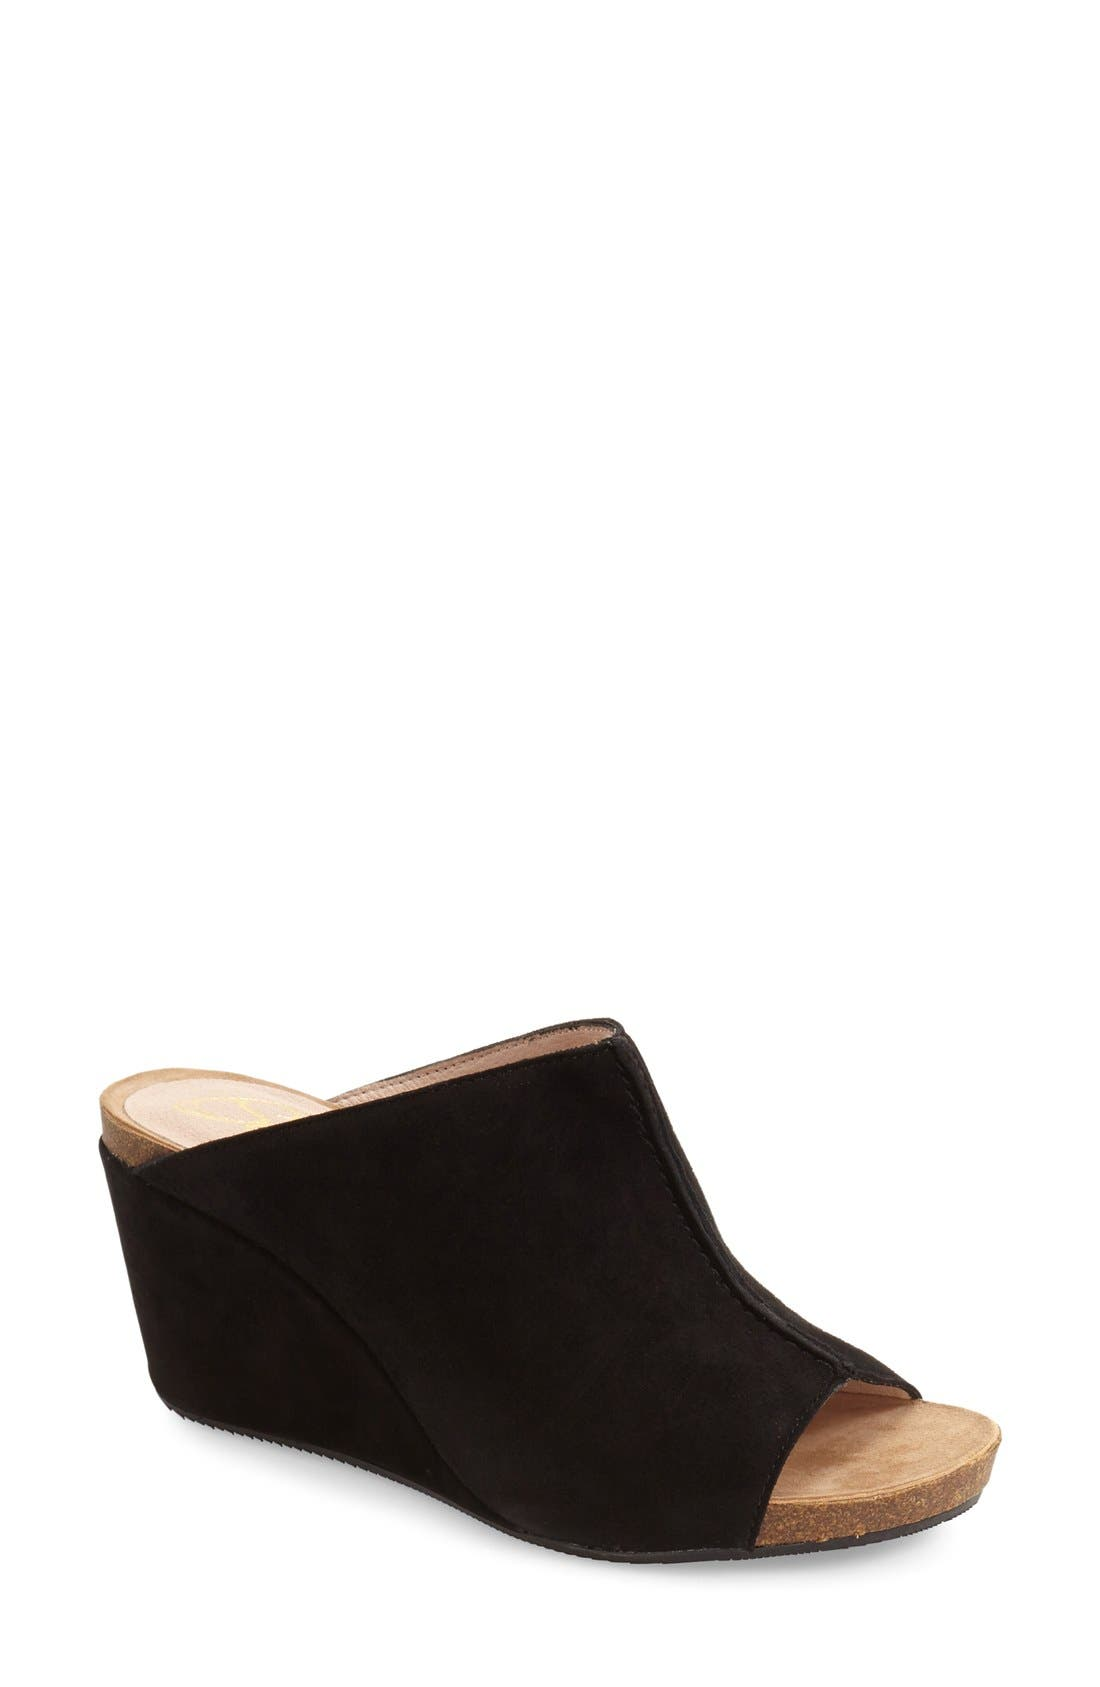 Main Image - Sudini 'Bailey' Suede Wedge (Women)